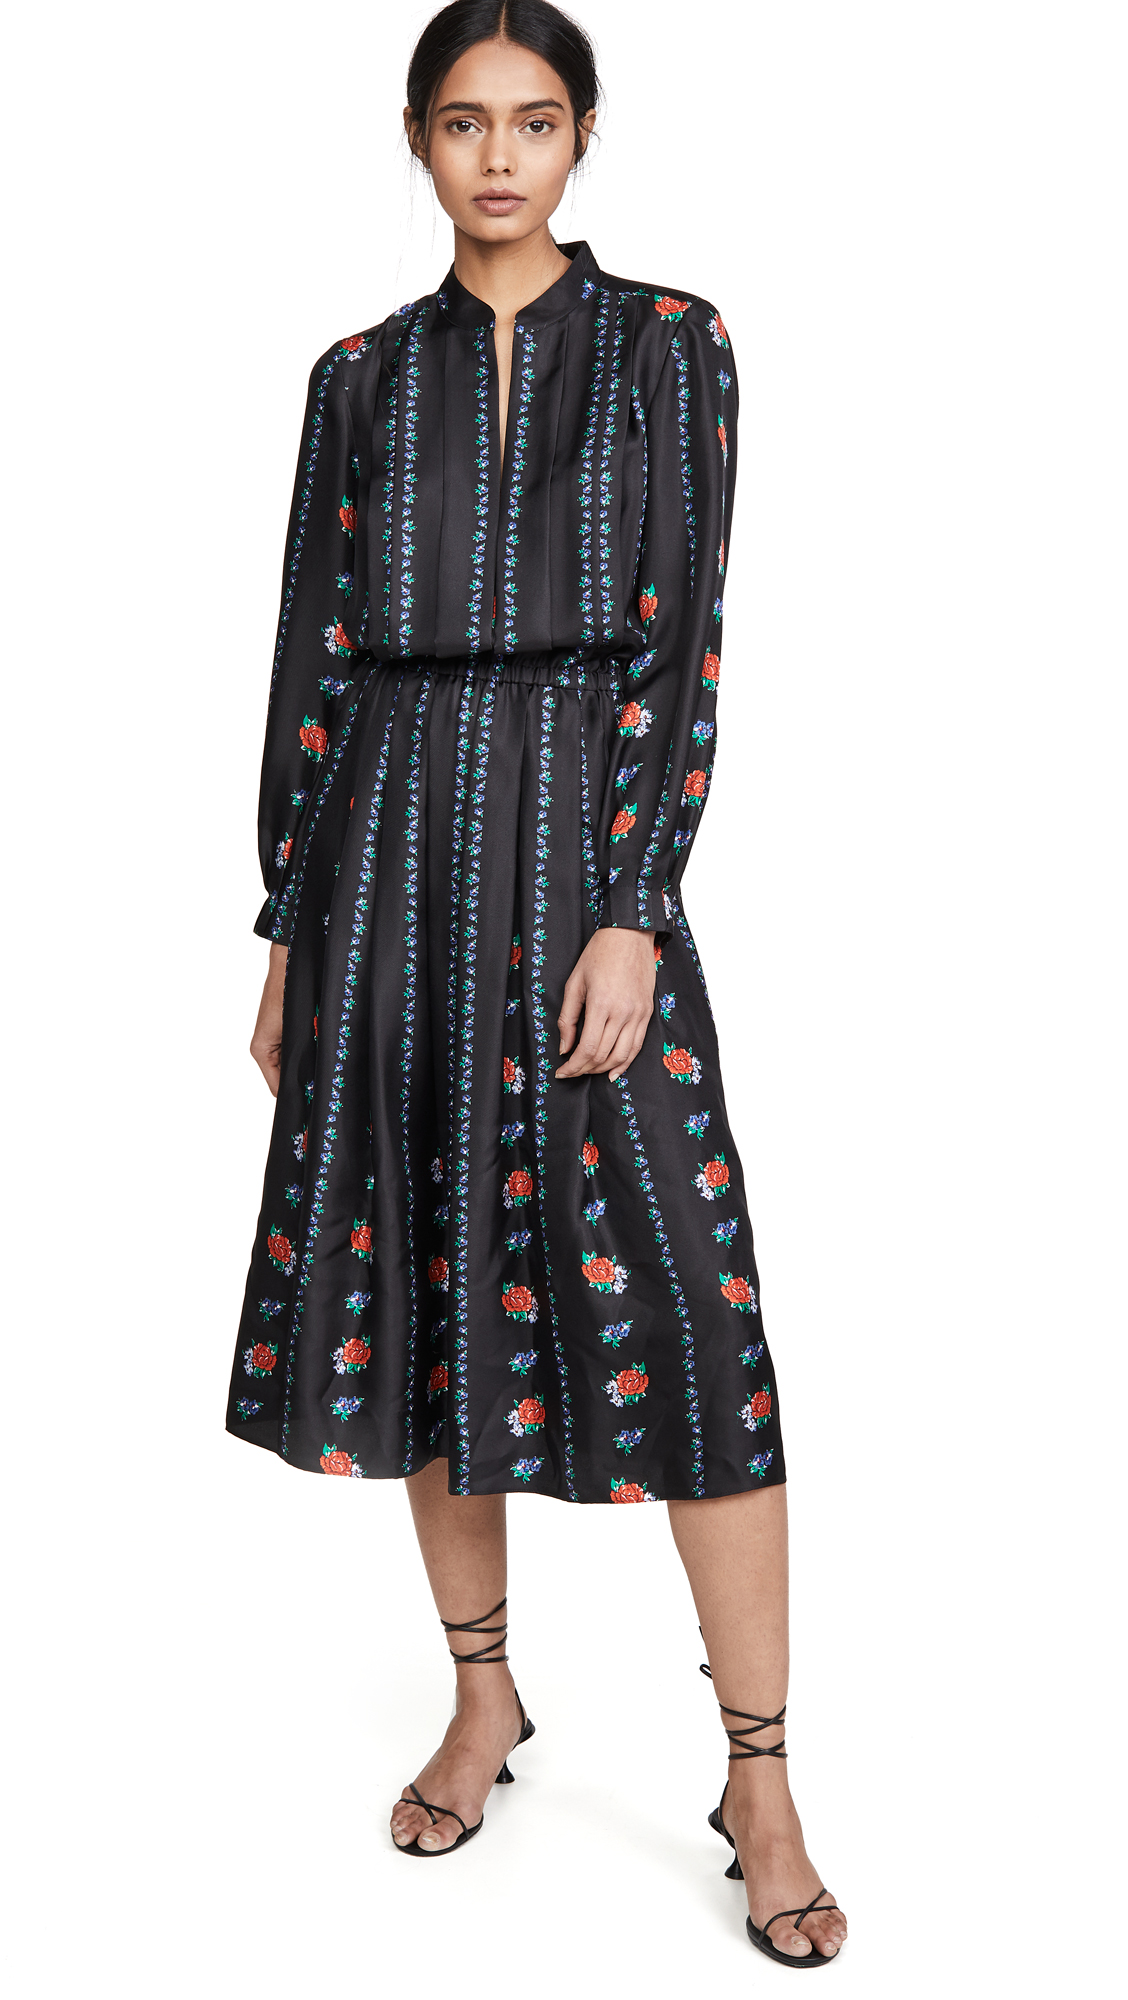 Tory Burch Printed Long Sleeve Dress - 50% Off Sale